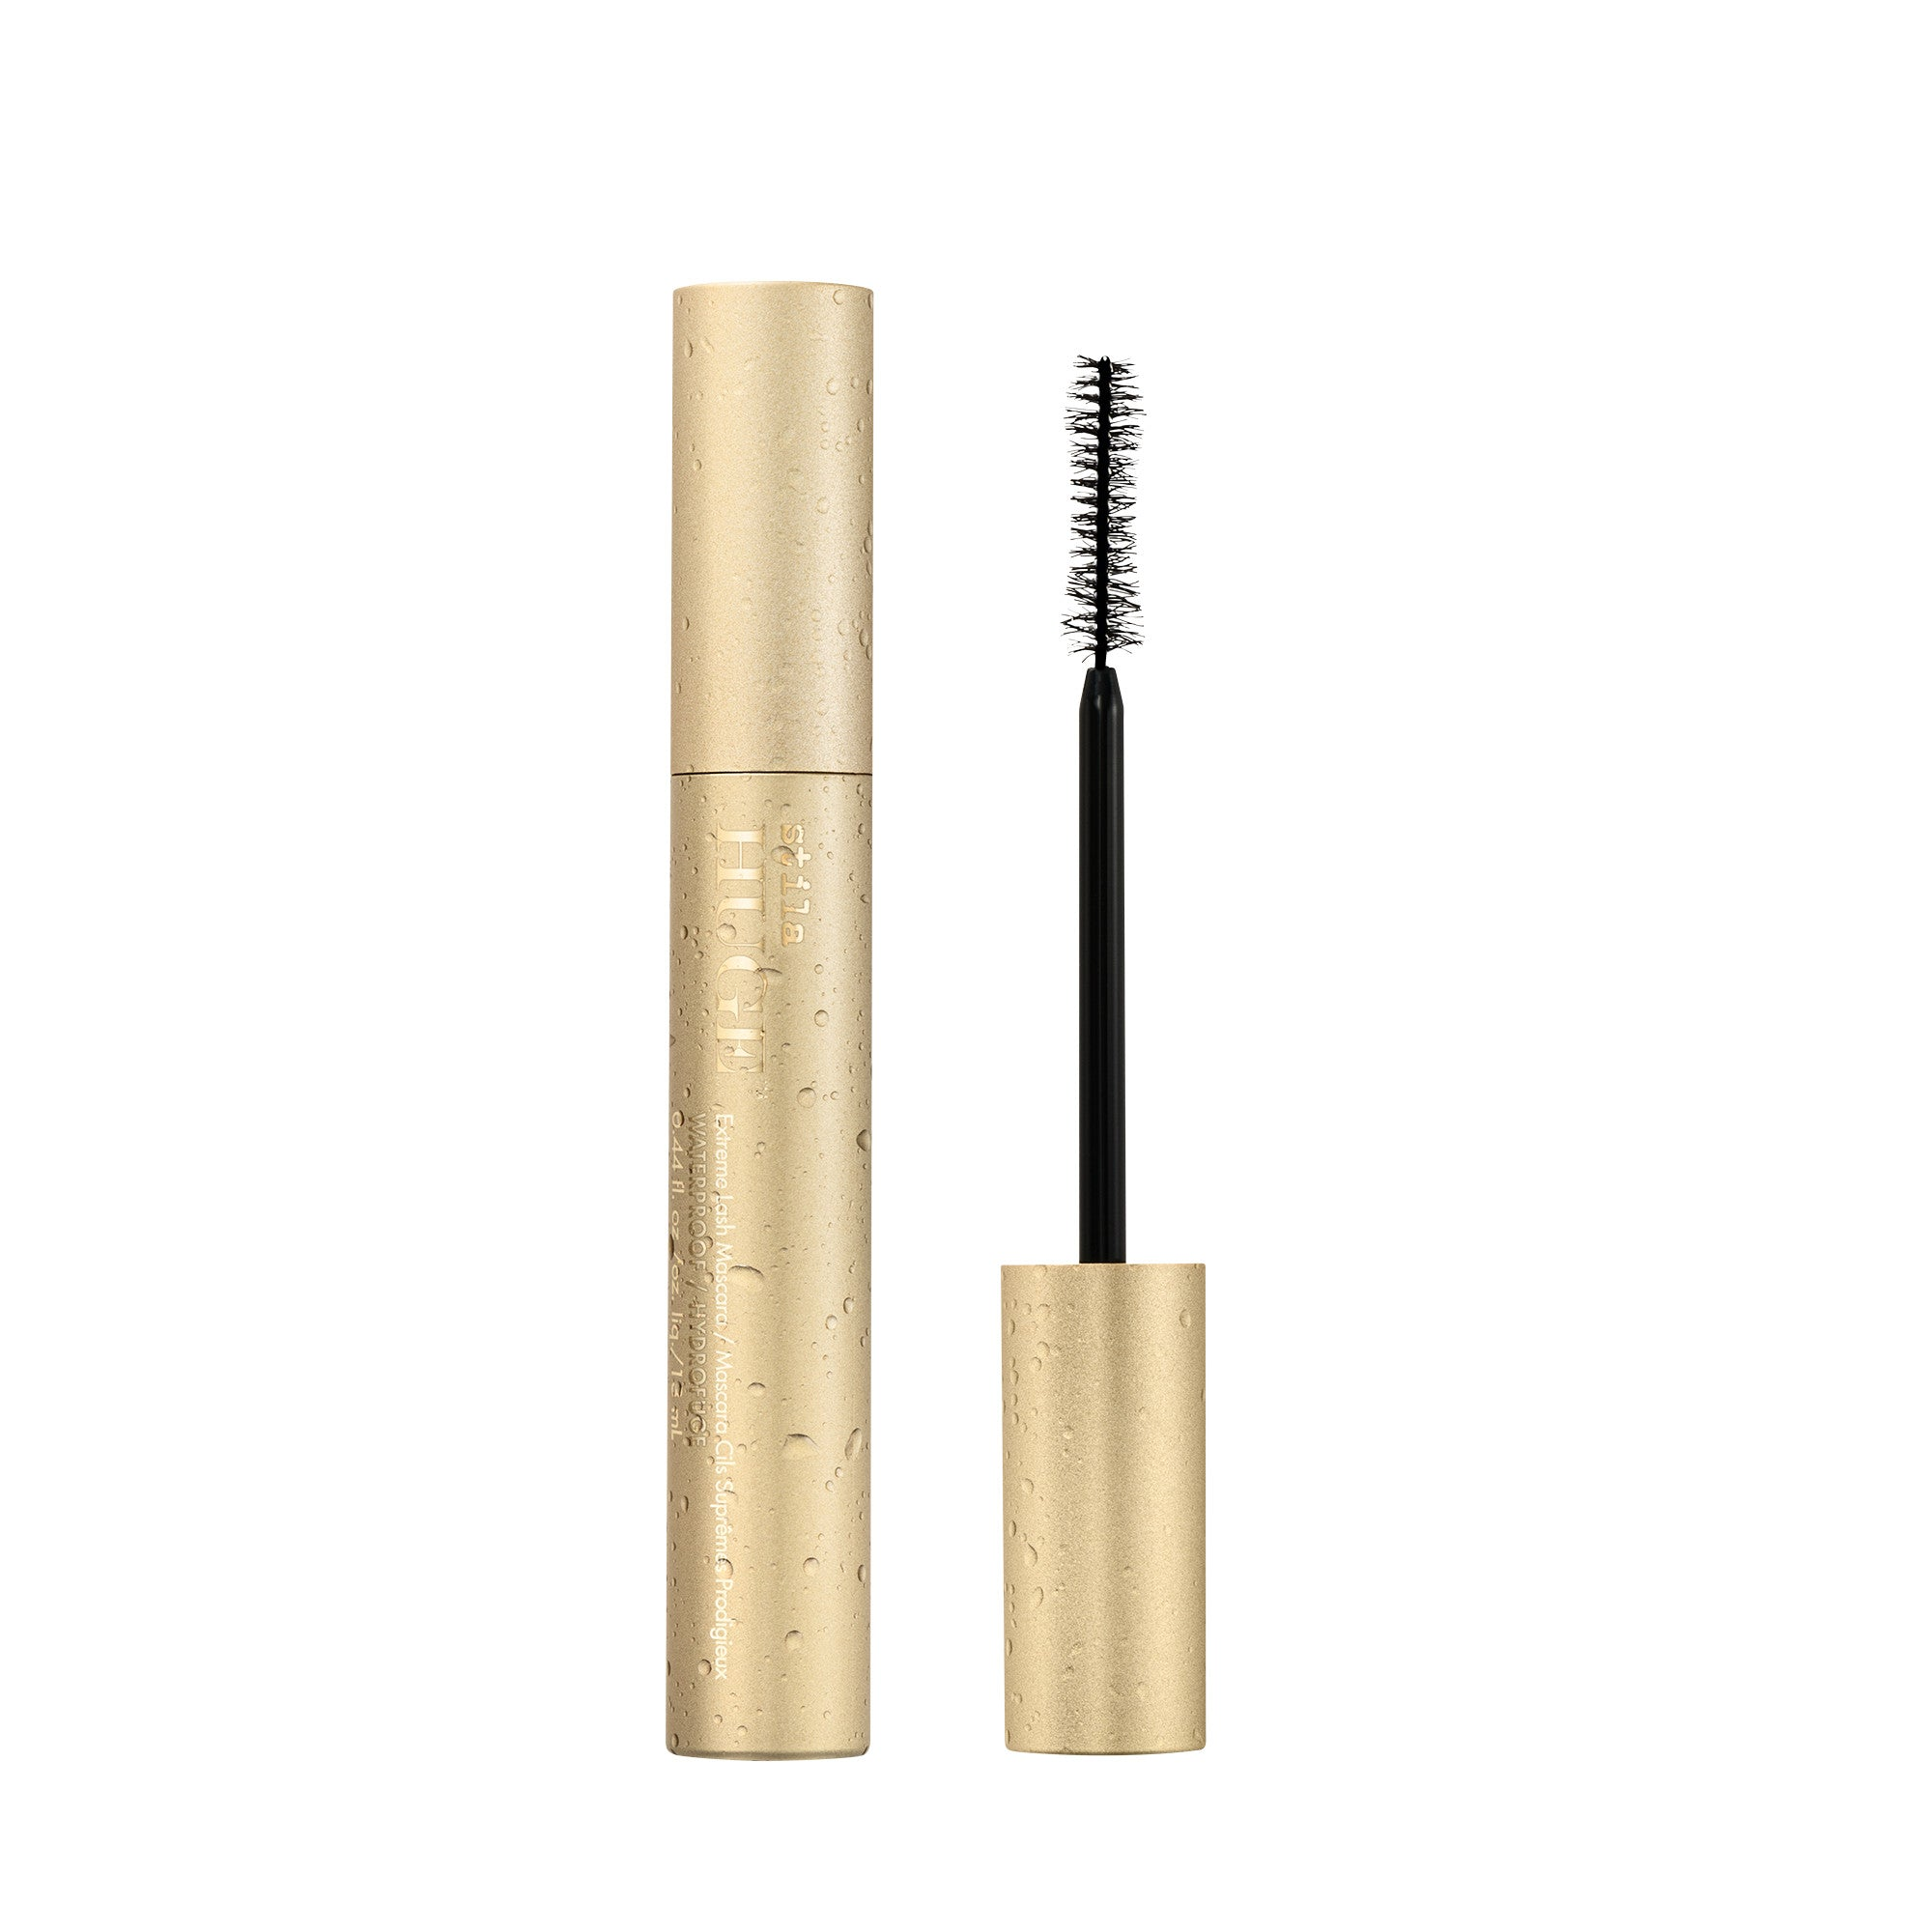 Huge™ Extreme Lash Mascara Waterproof